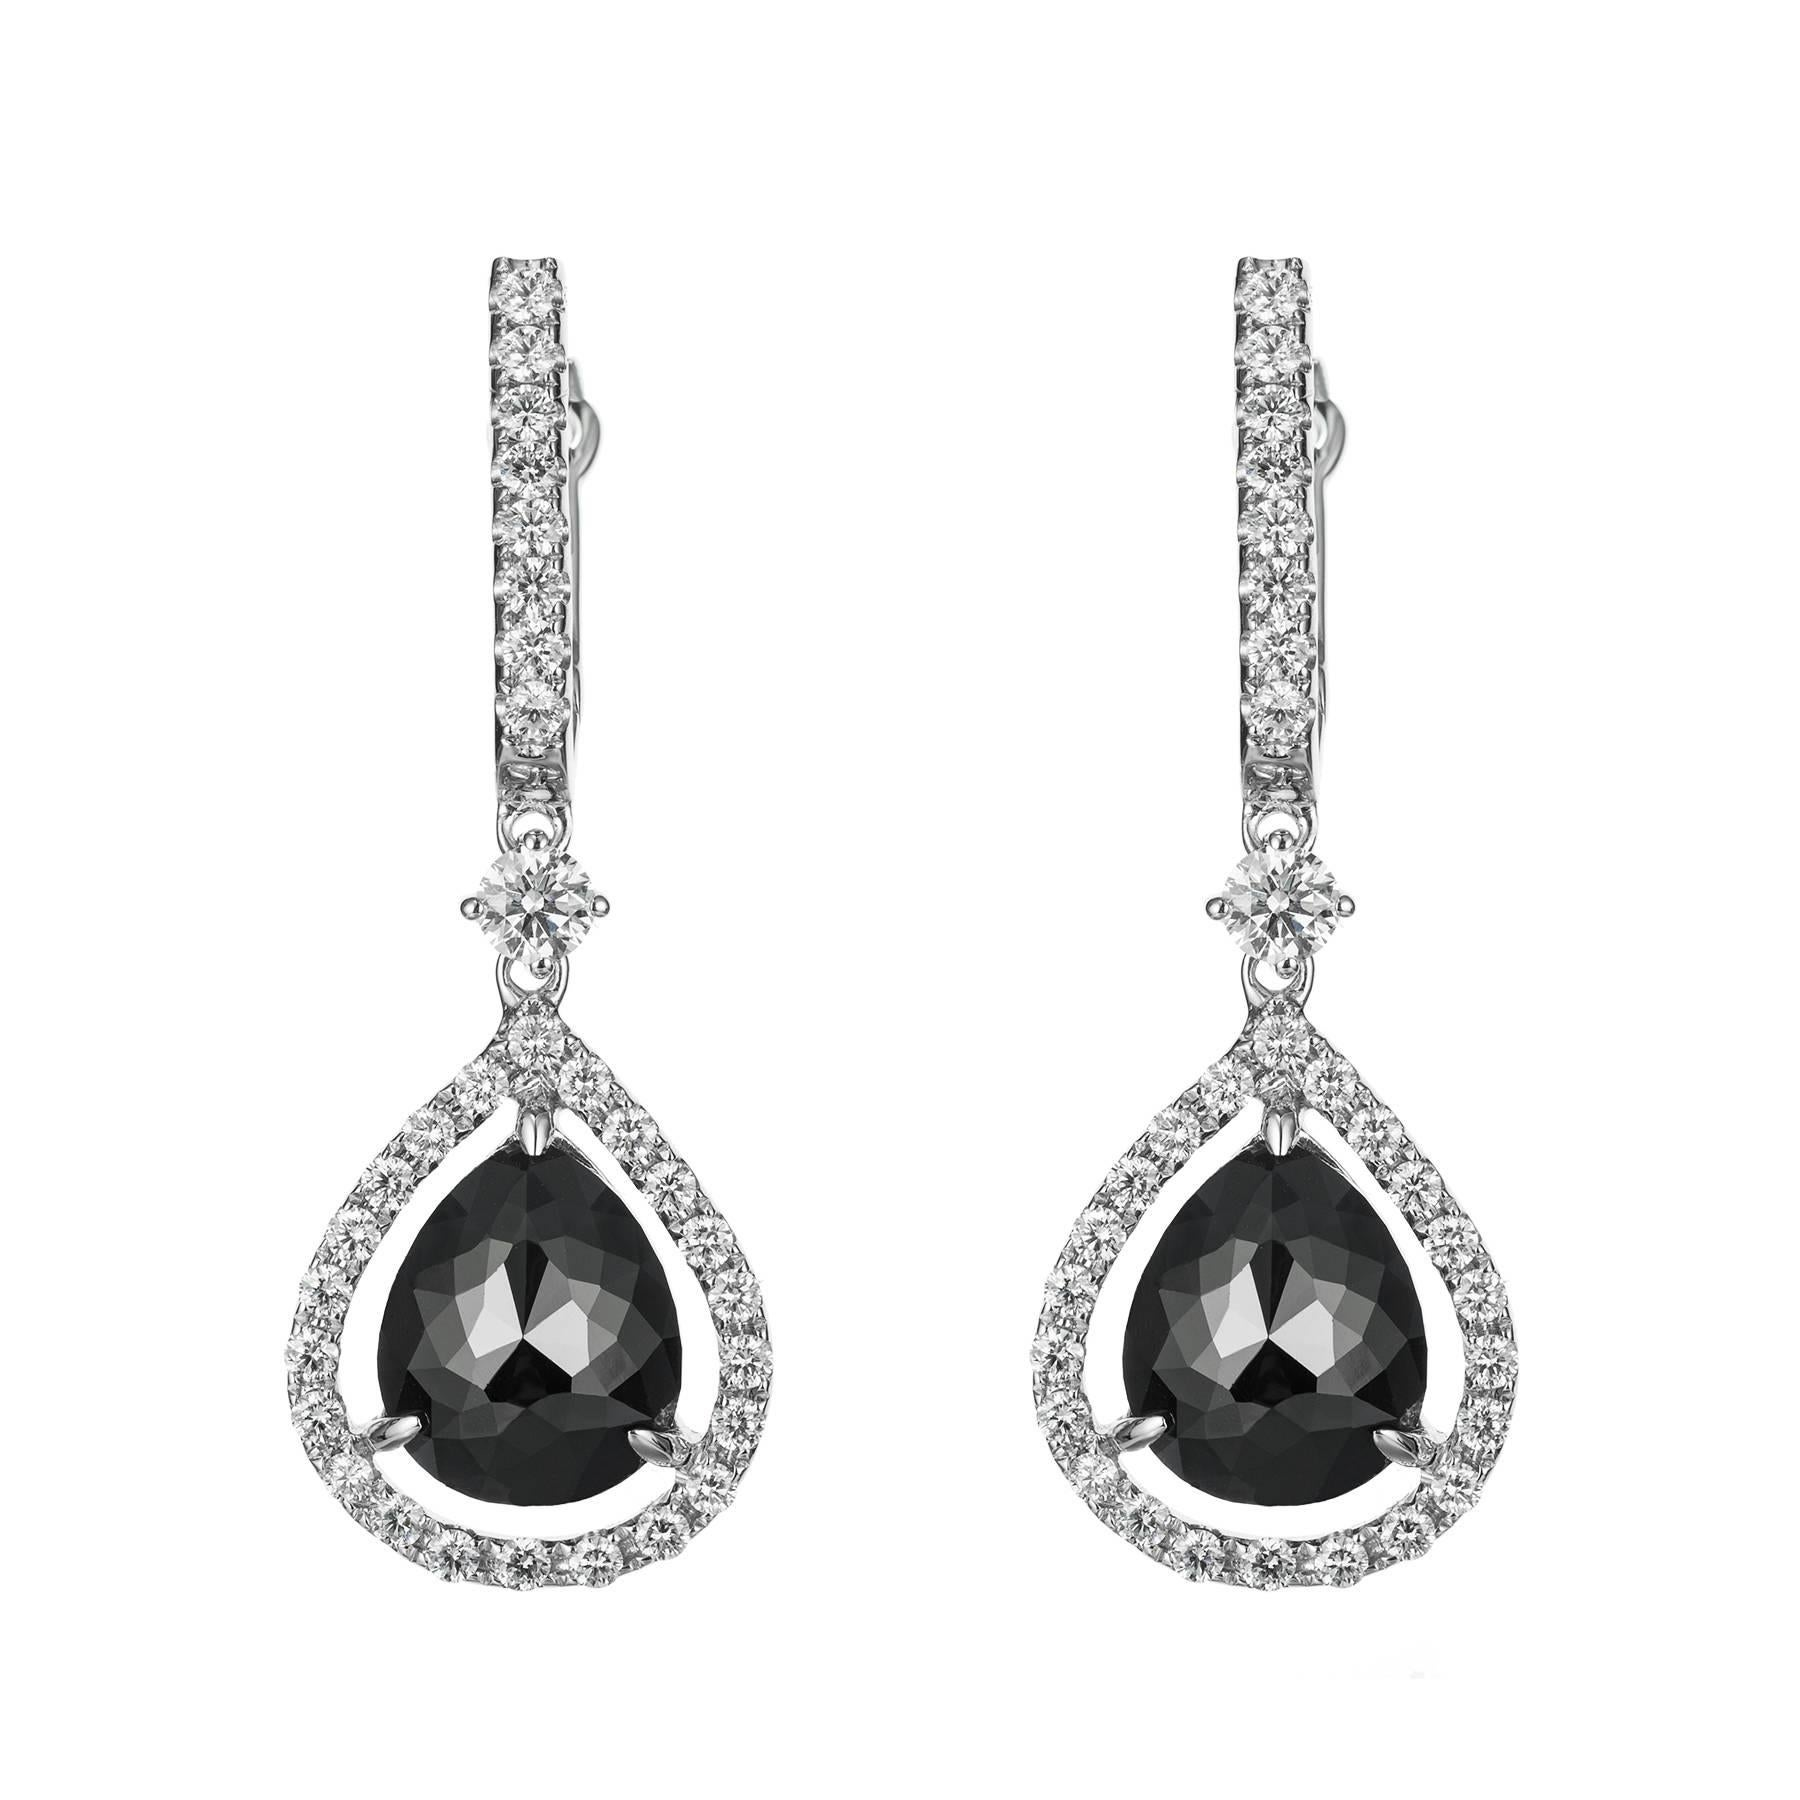 t earrings with collections pear diamond rough baguettes ann jewels products shaped p lesley